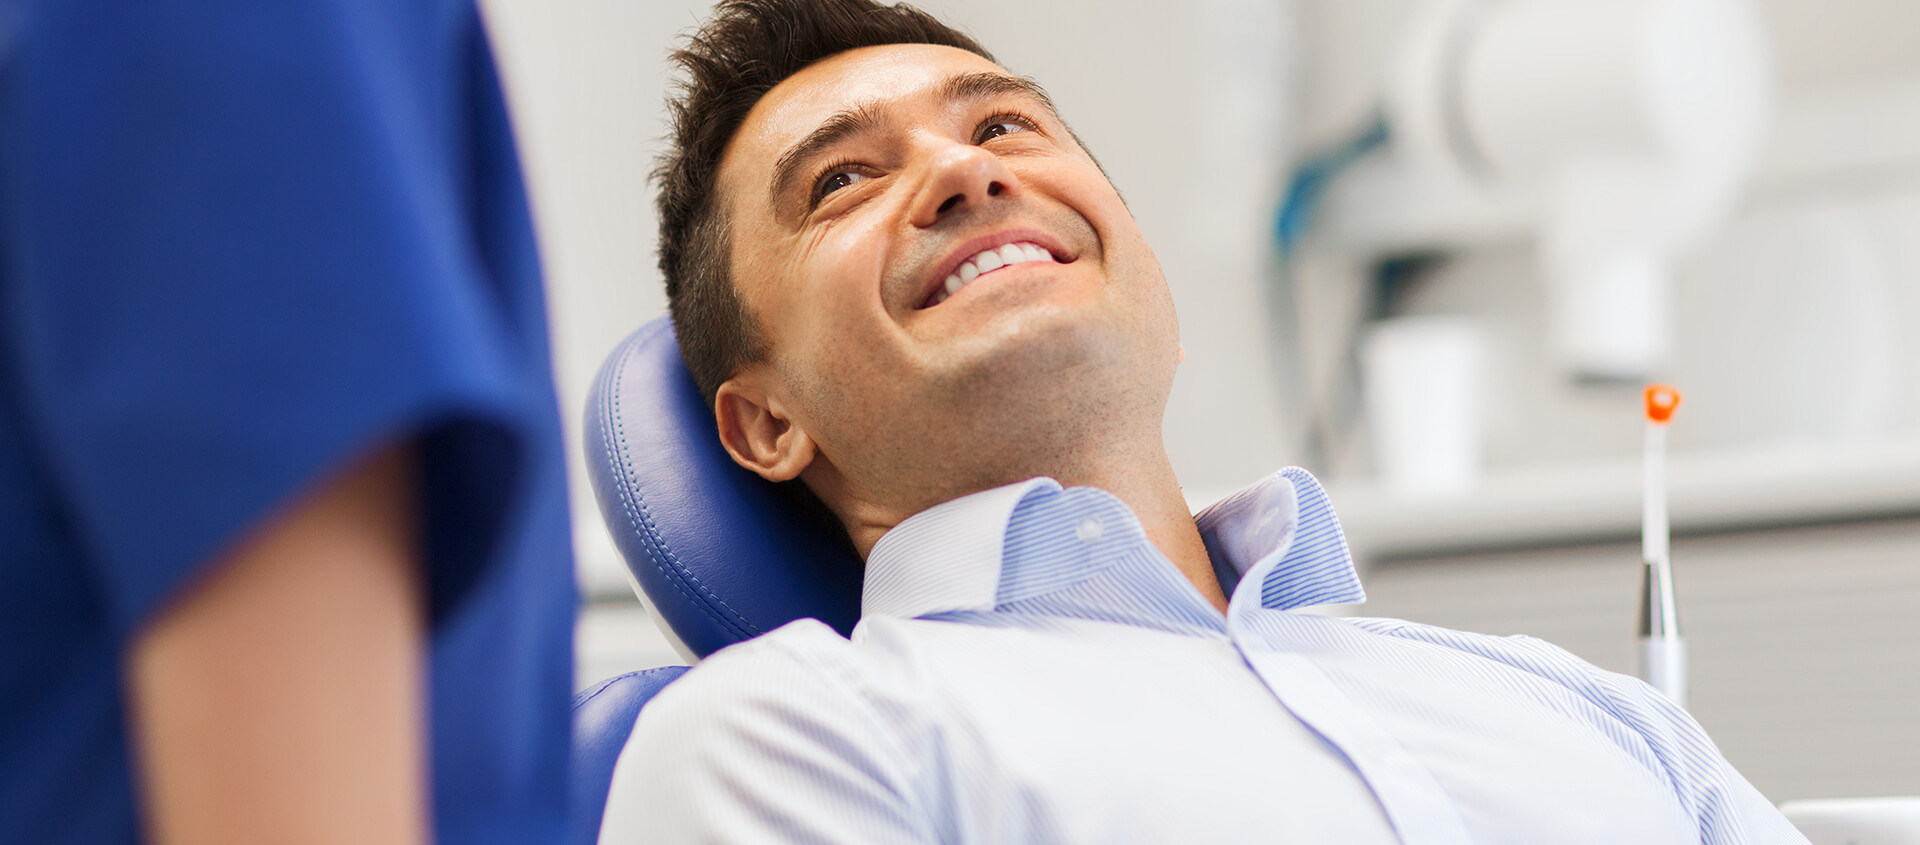 Dental Implants Can Save Your Natural Teeth in Middletown IN Area